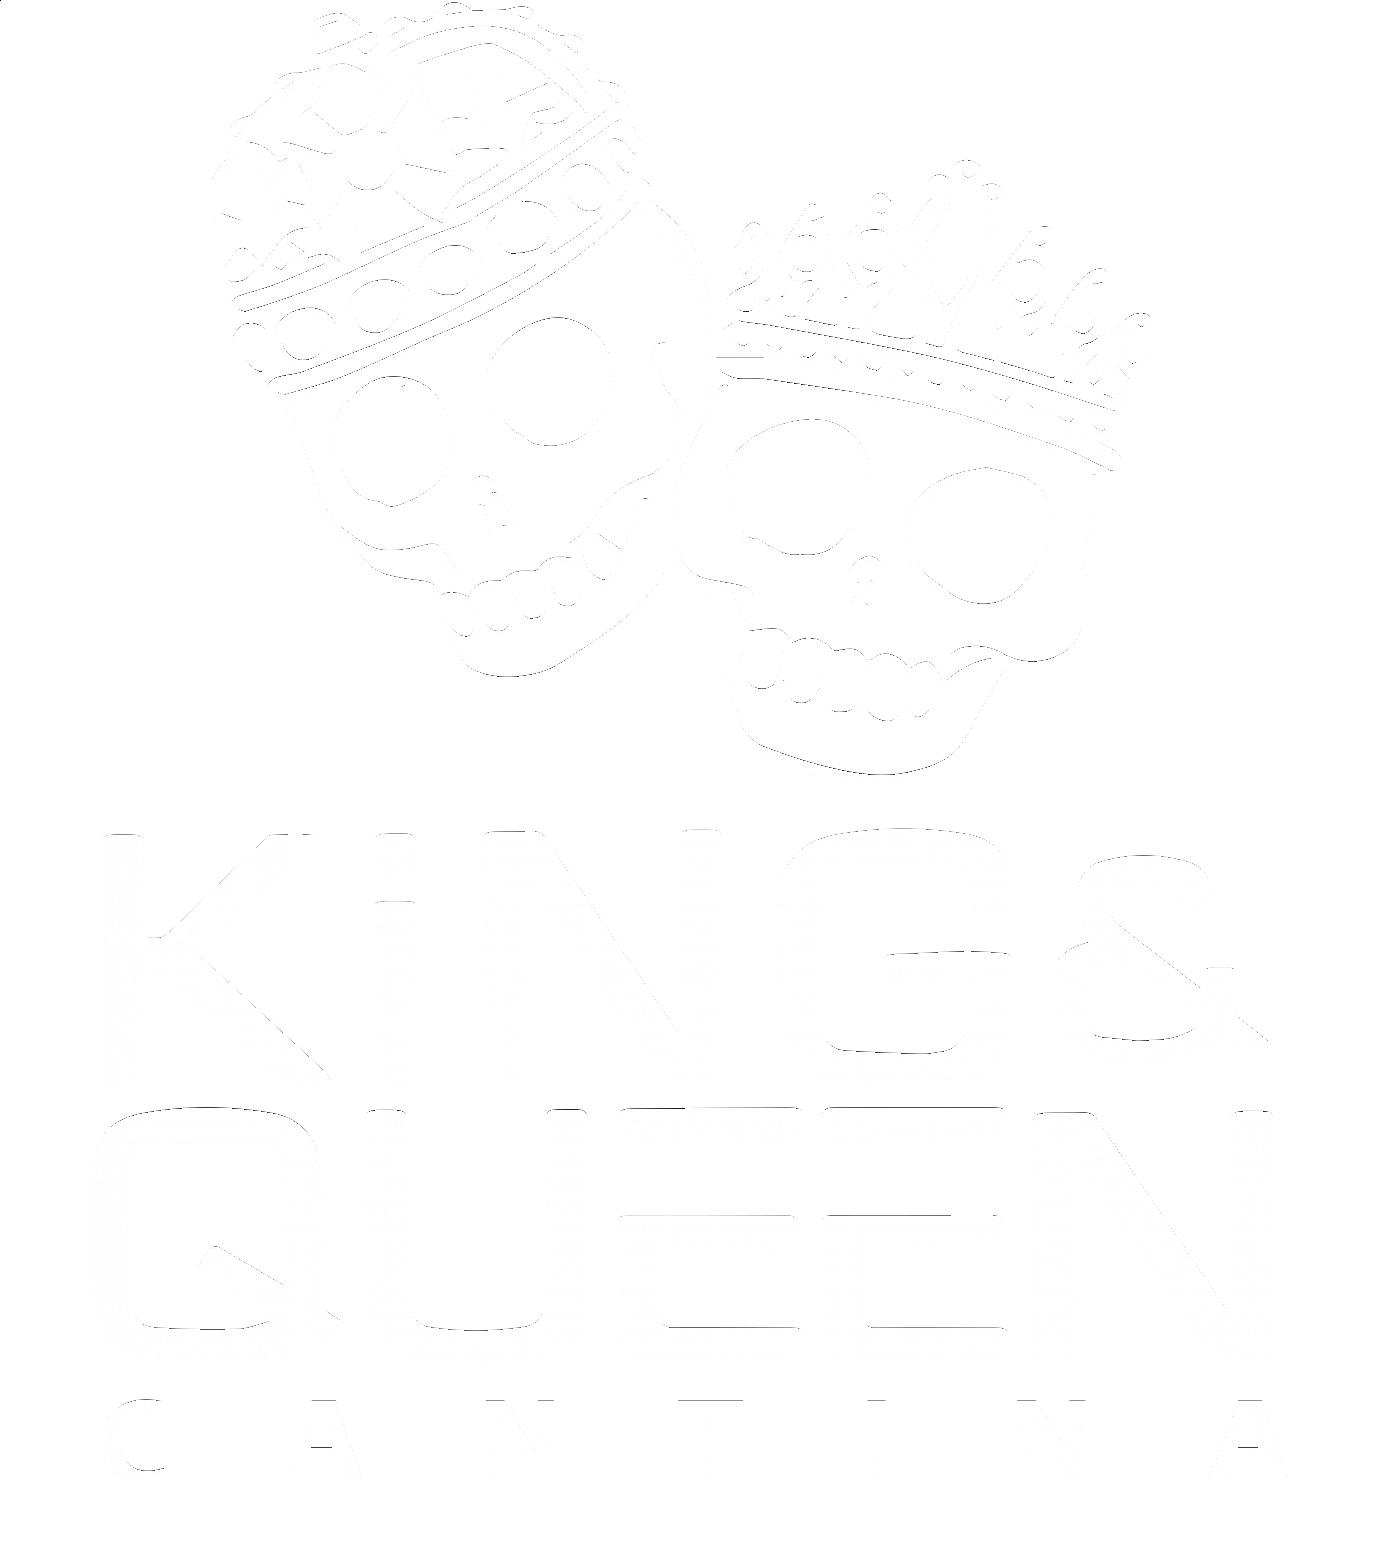 King And Queen Cantina San Diego Top Rated Mexican Food 👑 i create everything and every character is over the age of @king_maoh. king and queen cantina san diego top